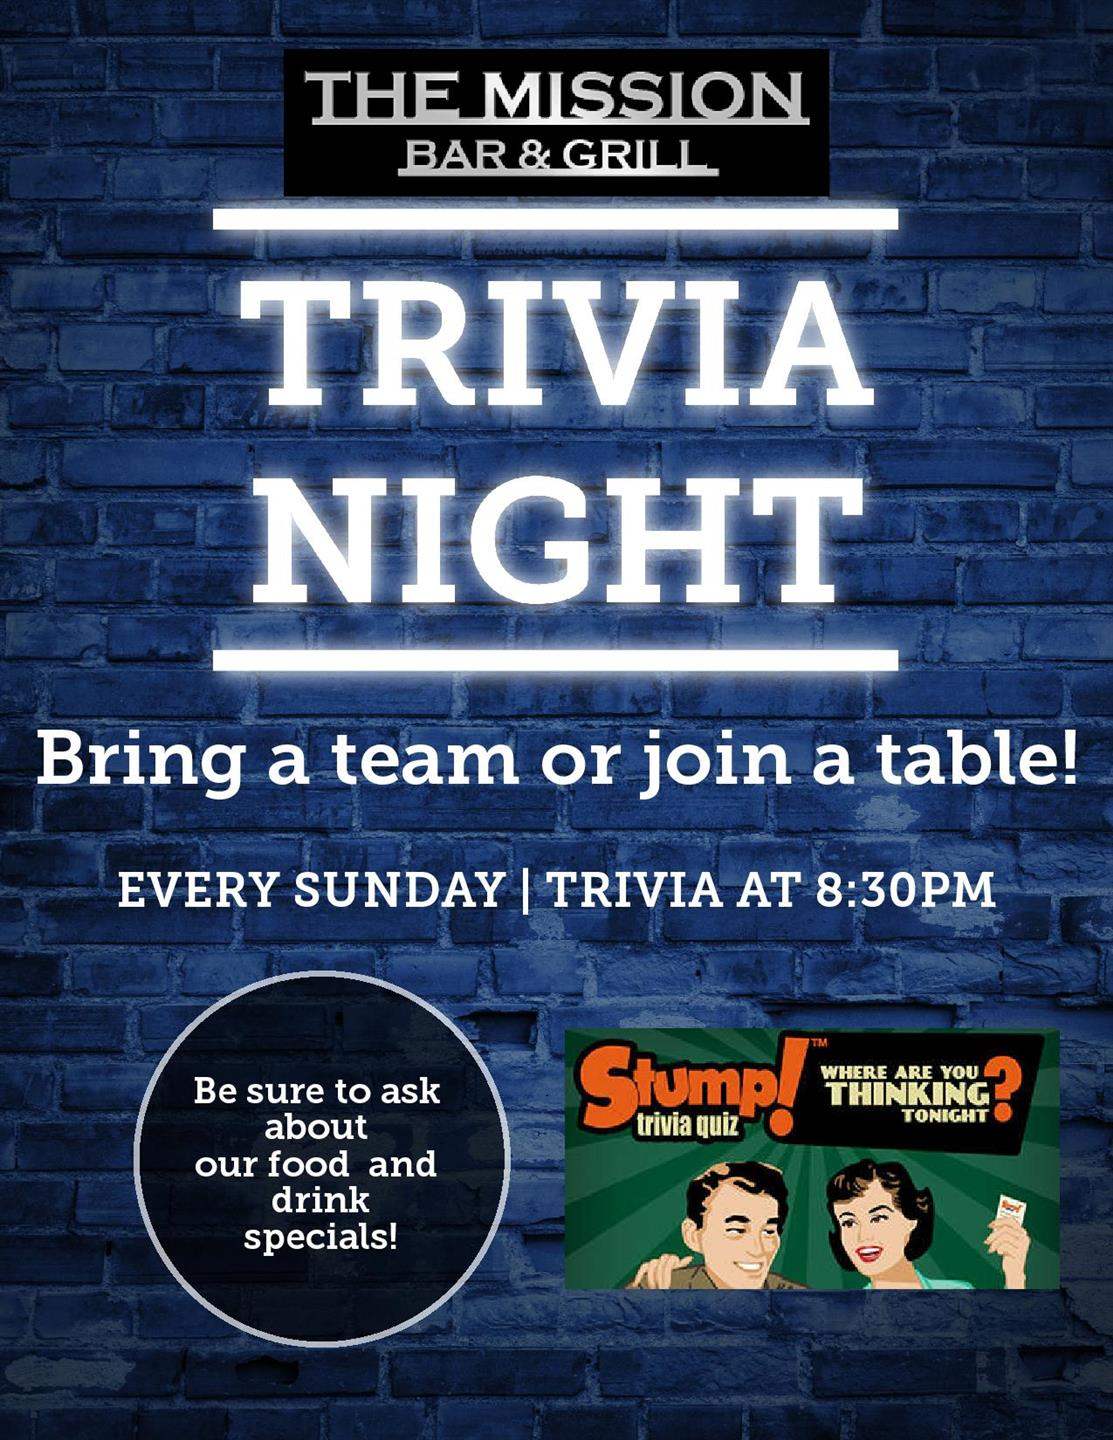 The mission bar & Grill - Trivia Night. Bring a team or join a table! Every Sunday | Trivia at 8:30 pm. Be sure to ask about our food and drink specials. Hosted by Stump Trivia!